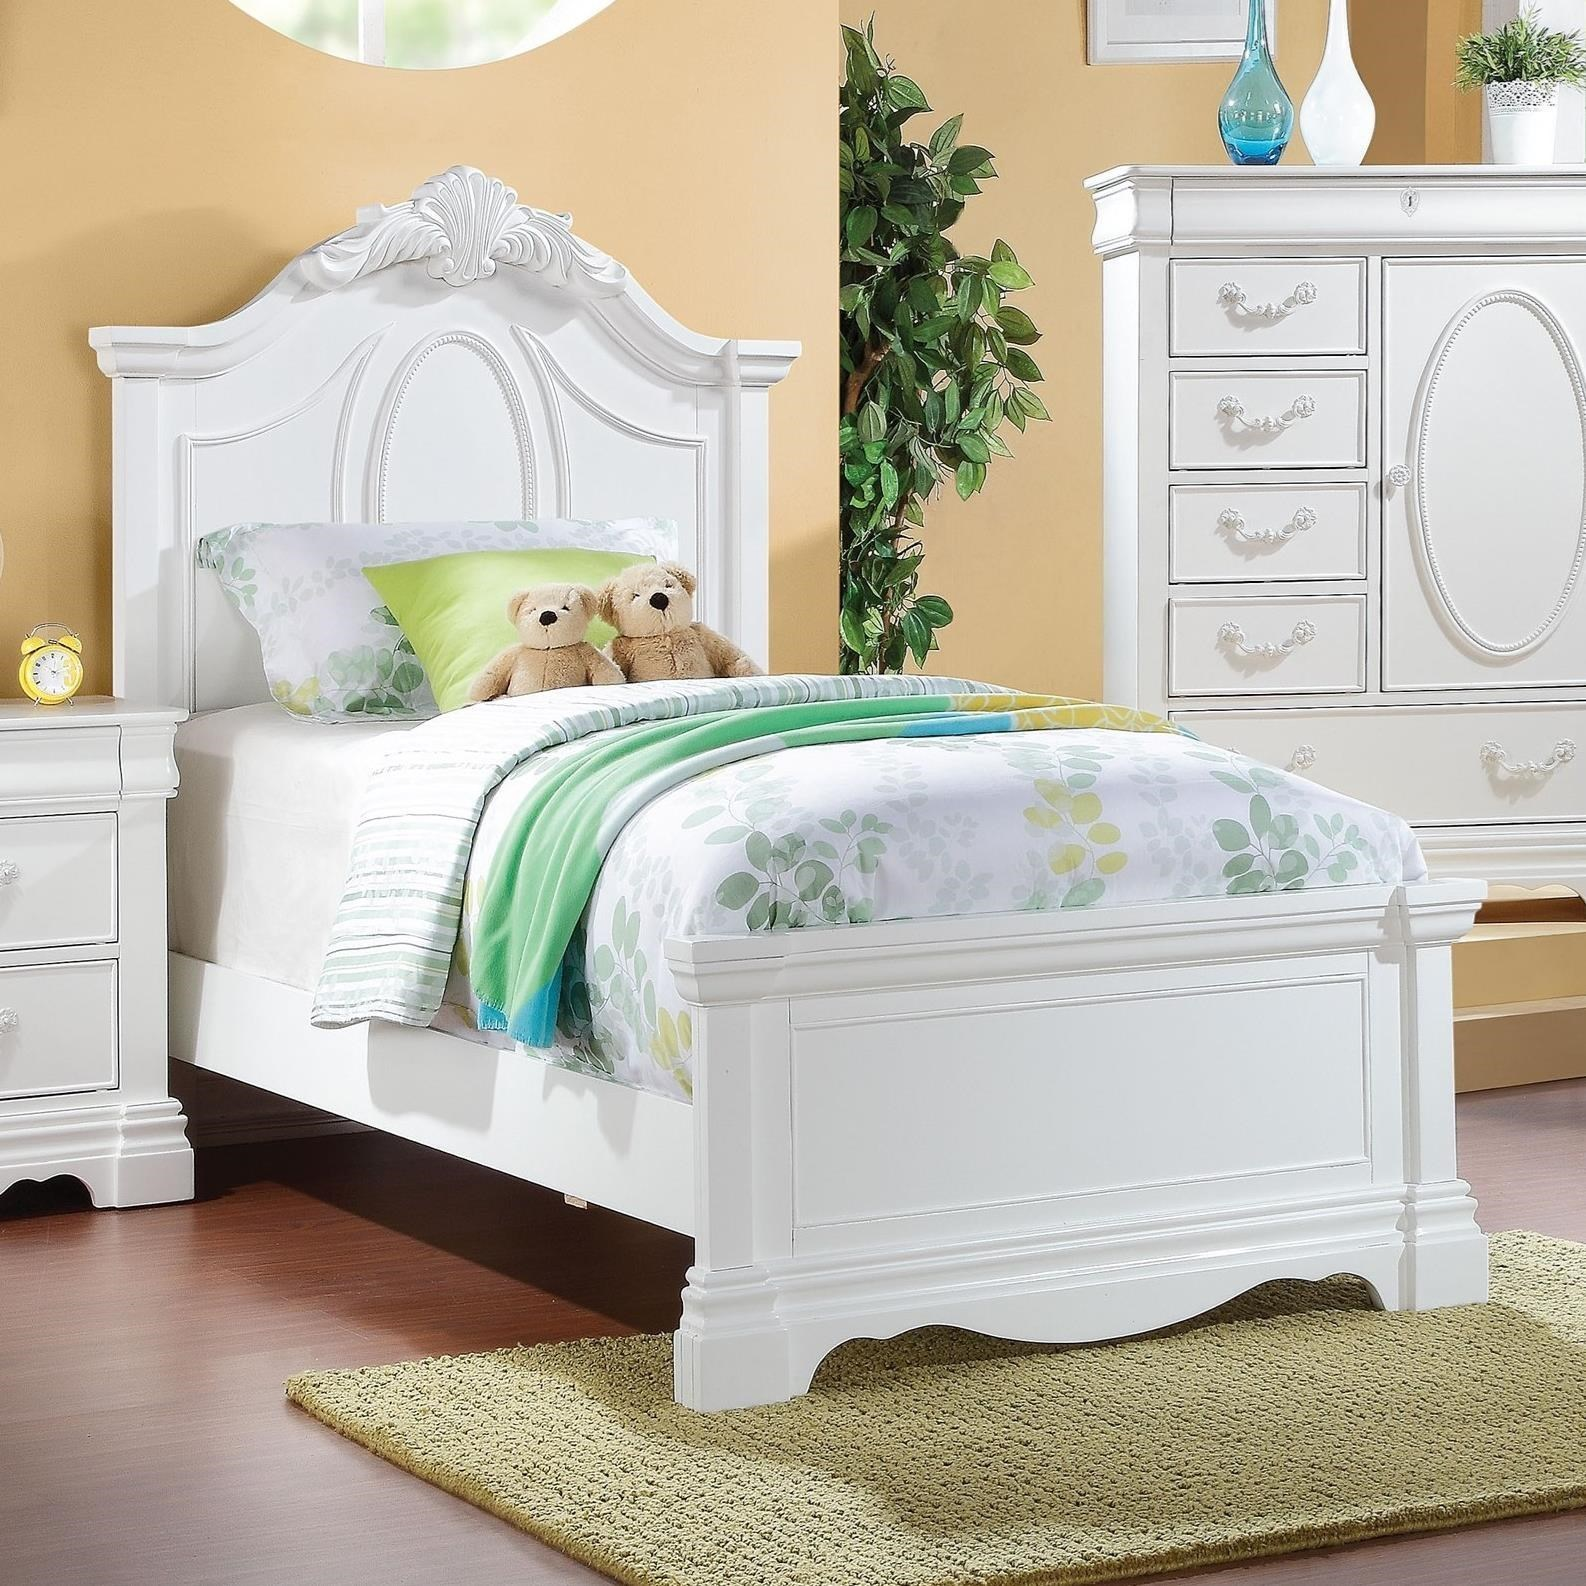 Traditional Full Bed with Decorative Motif